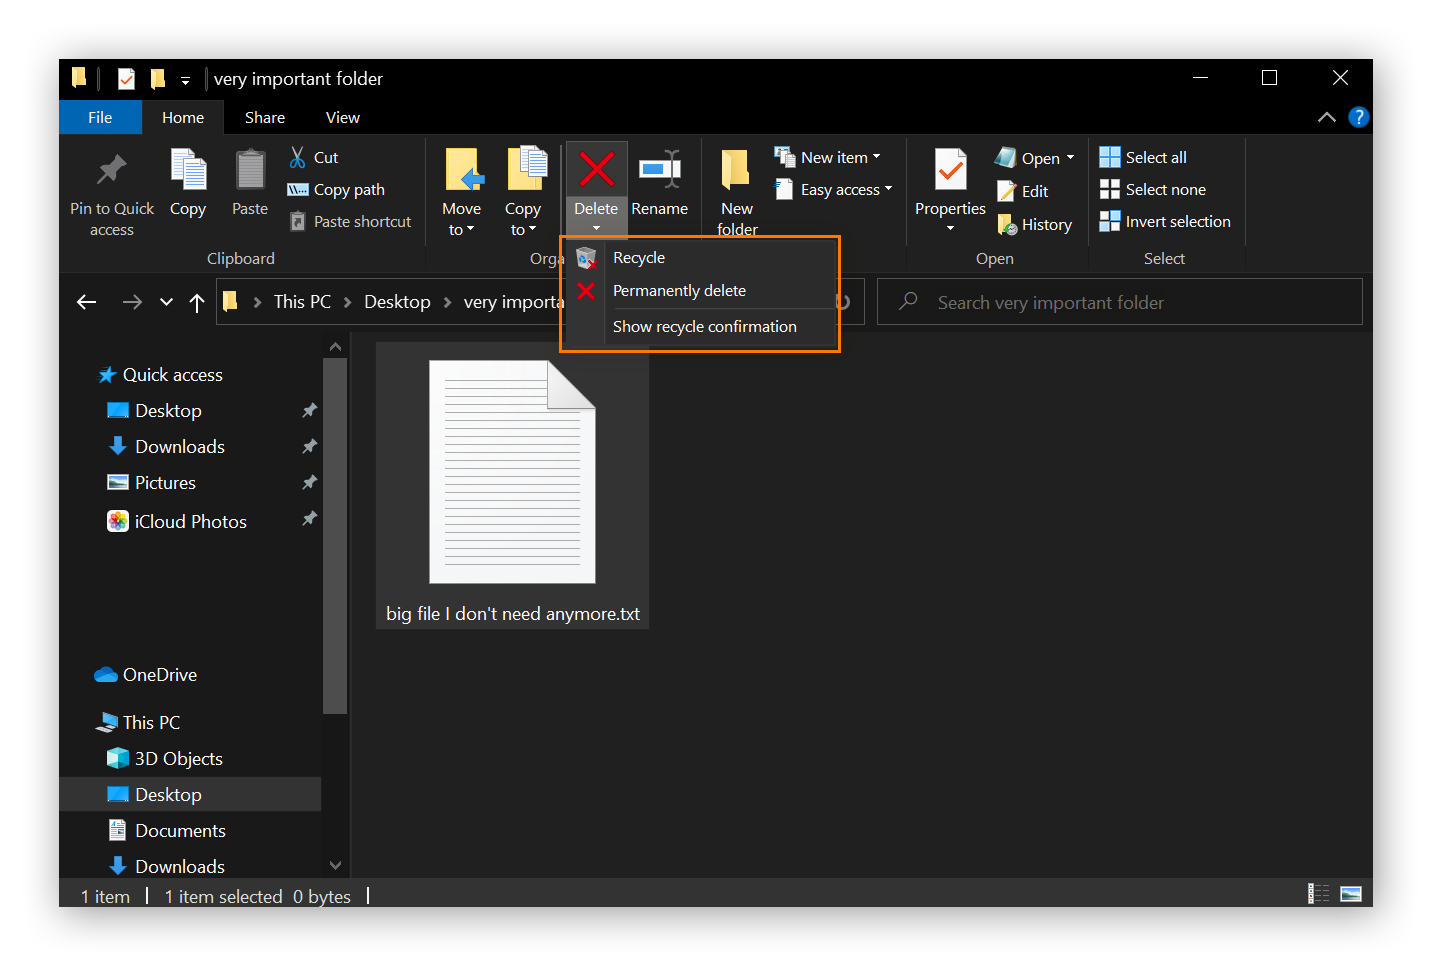 A screenshot of a file about to be deleted using File Explorer ribbon. Two options are shown: Recycle, and permanently delete.